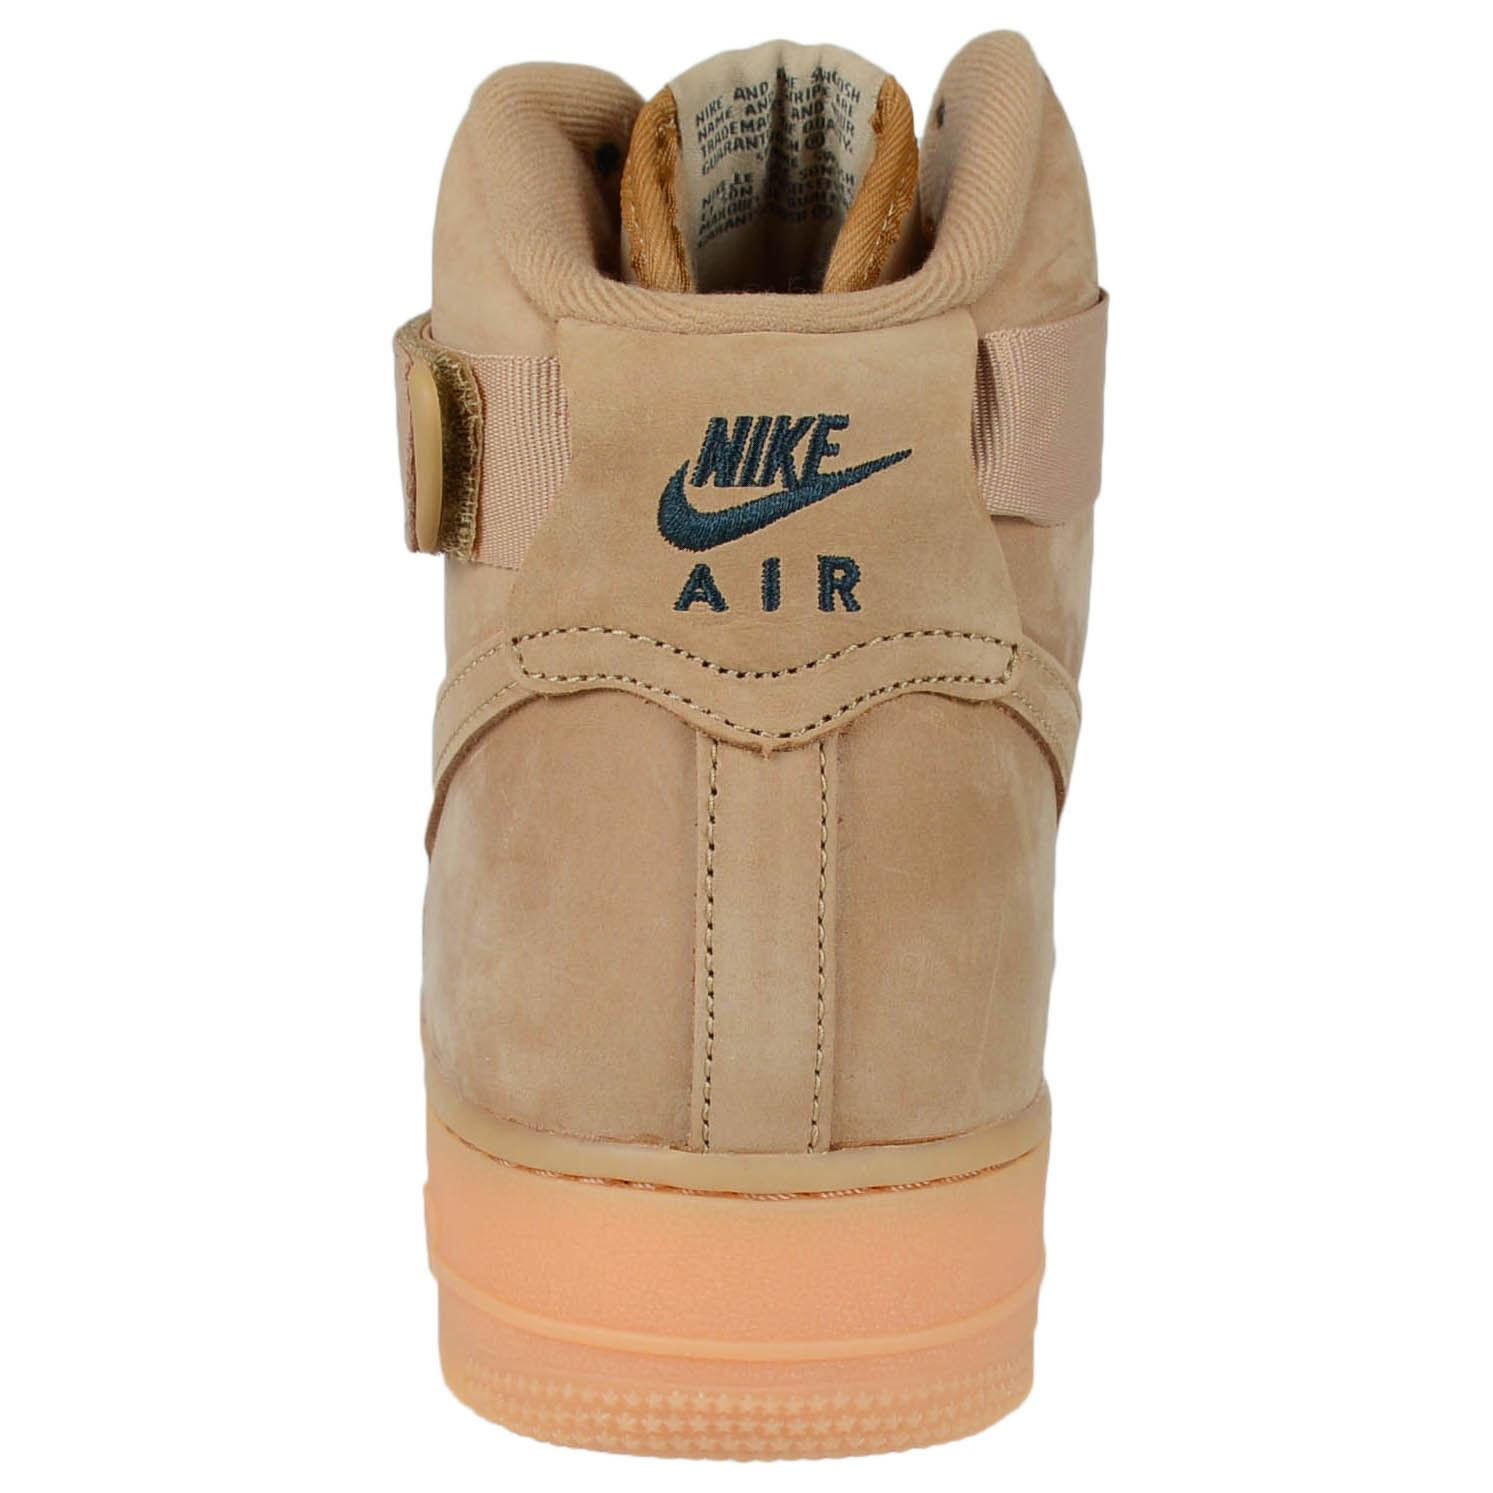 NIKE AIR FORCE 1 HIGH(882096-200)